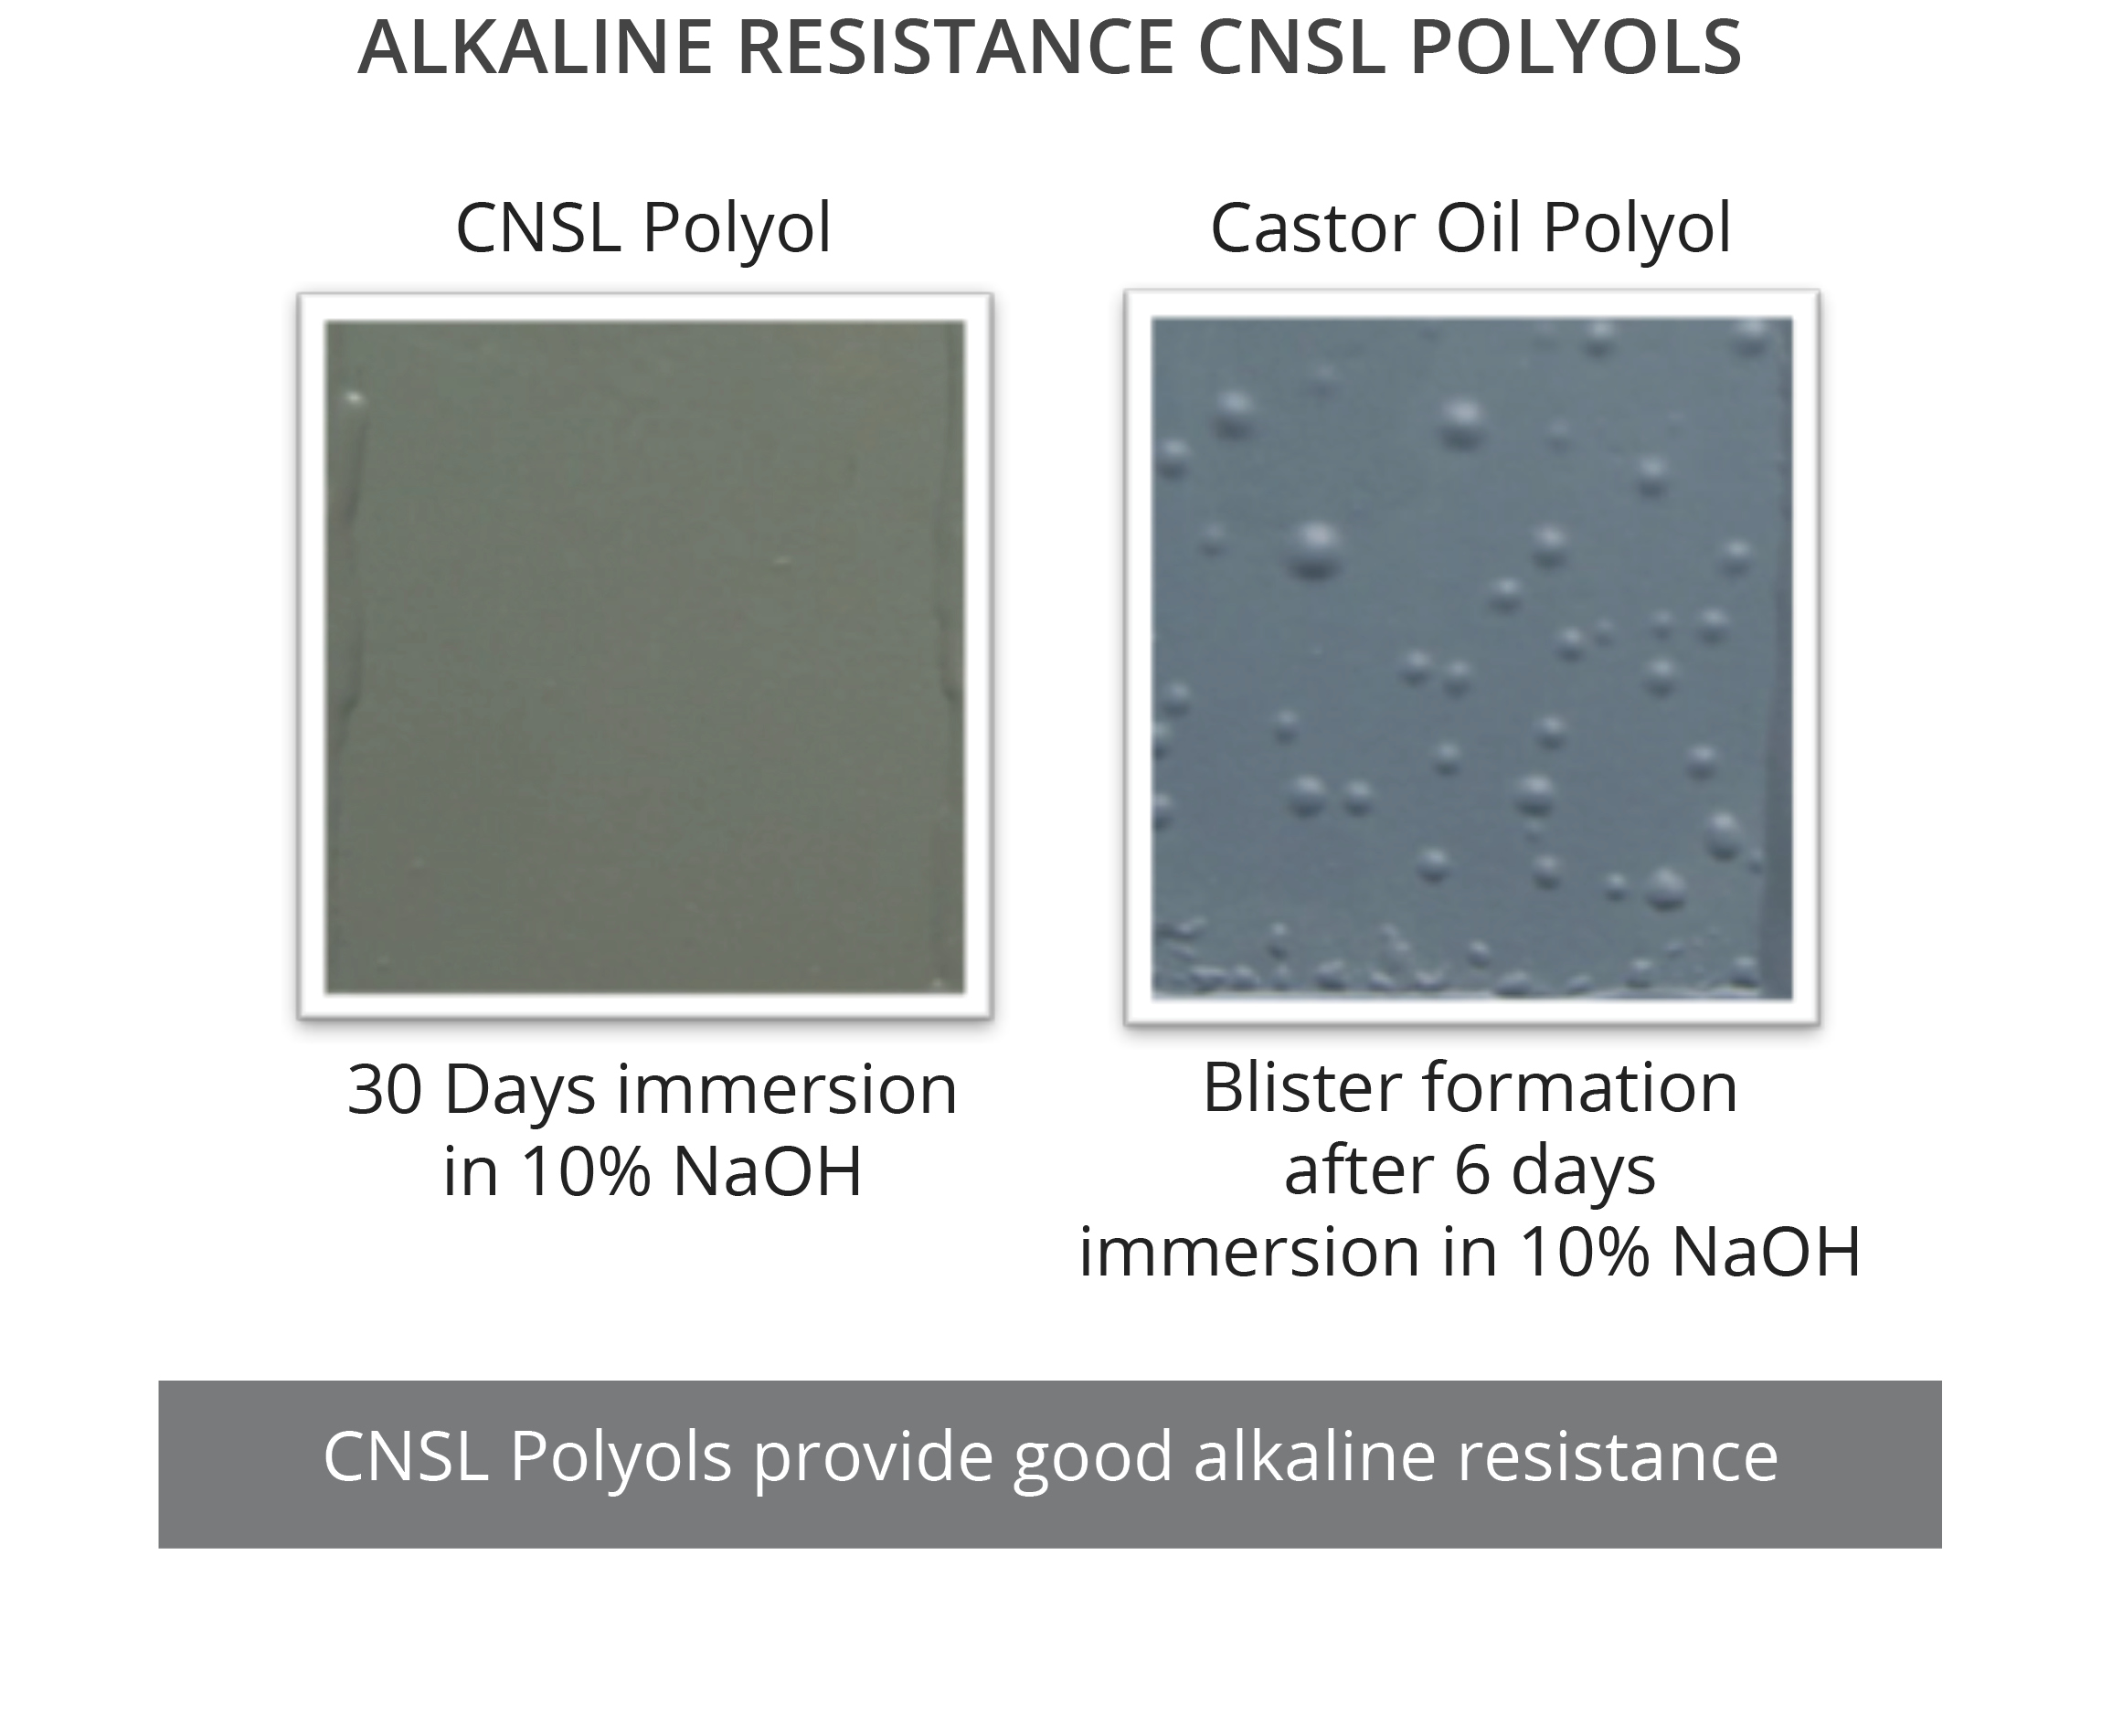 CNSL Polyols provide excellent protection against chemicals, specially alkaline solutions